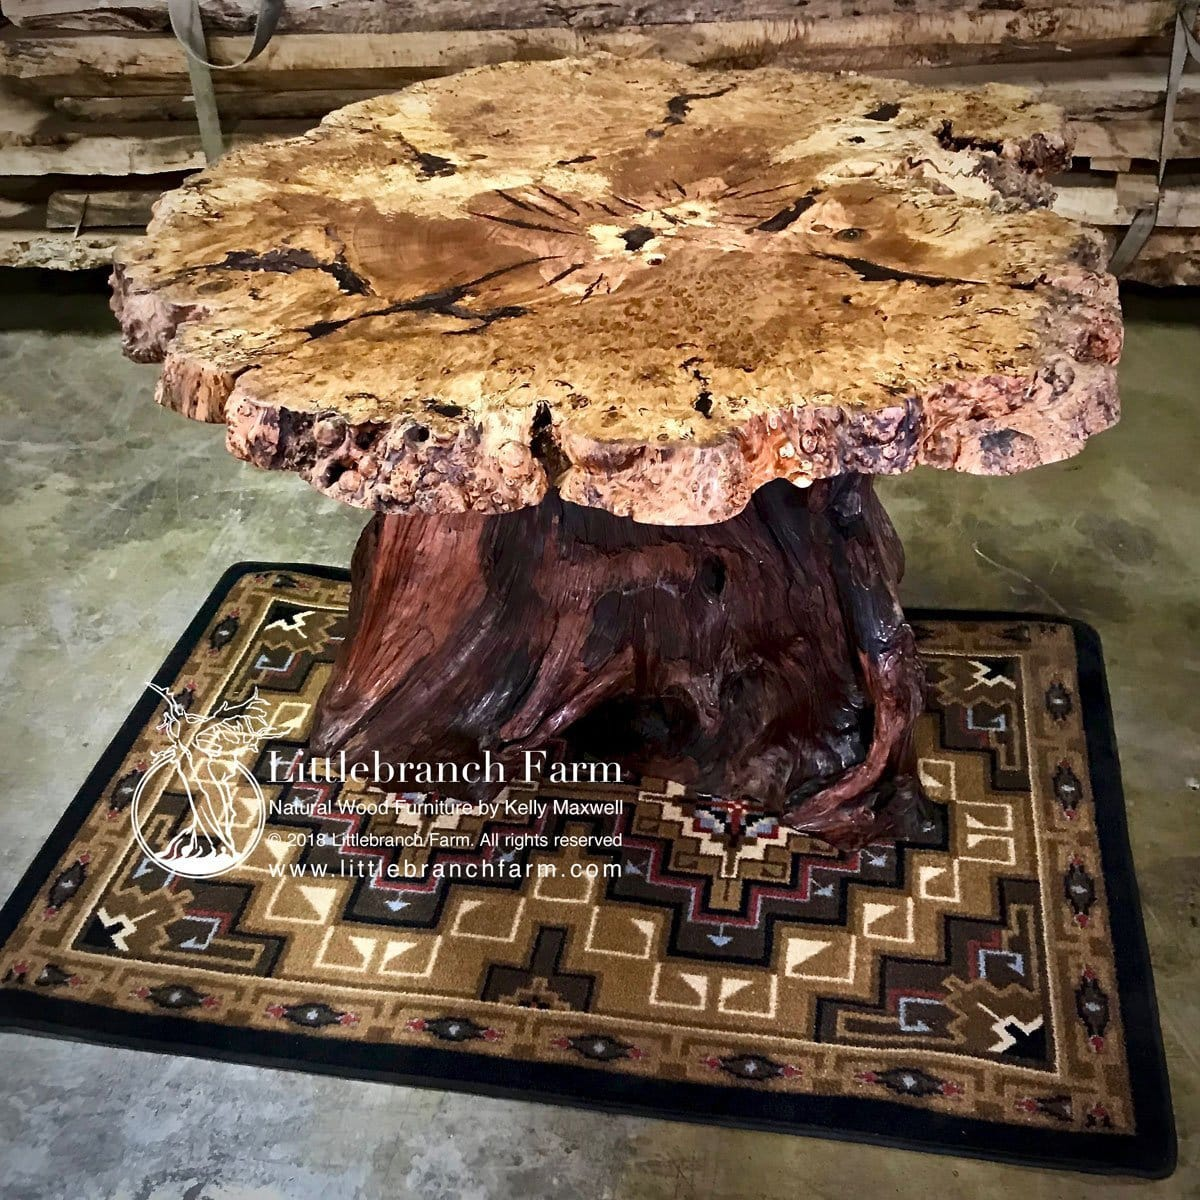 Black oak burl wood dining table with tree stump base.